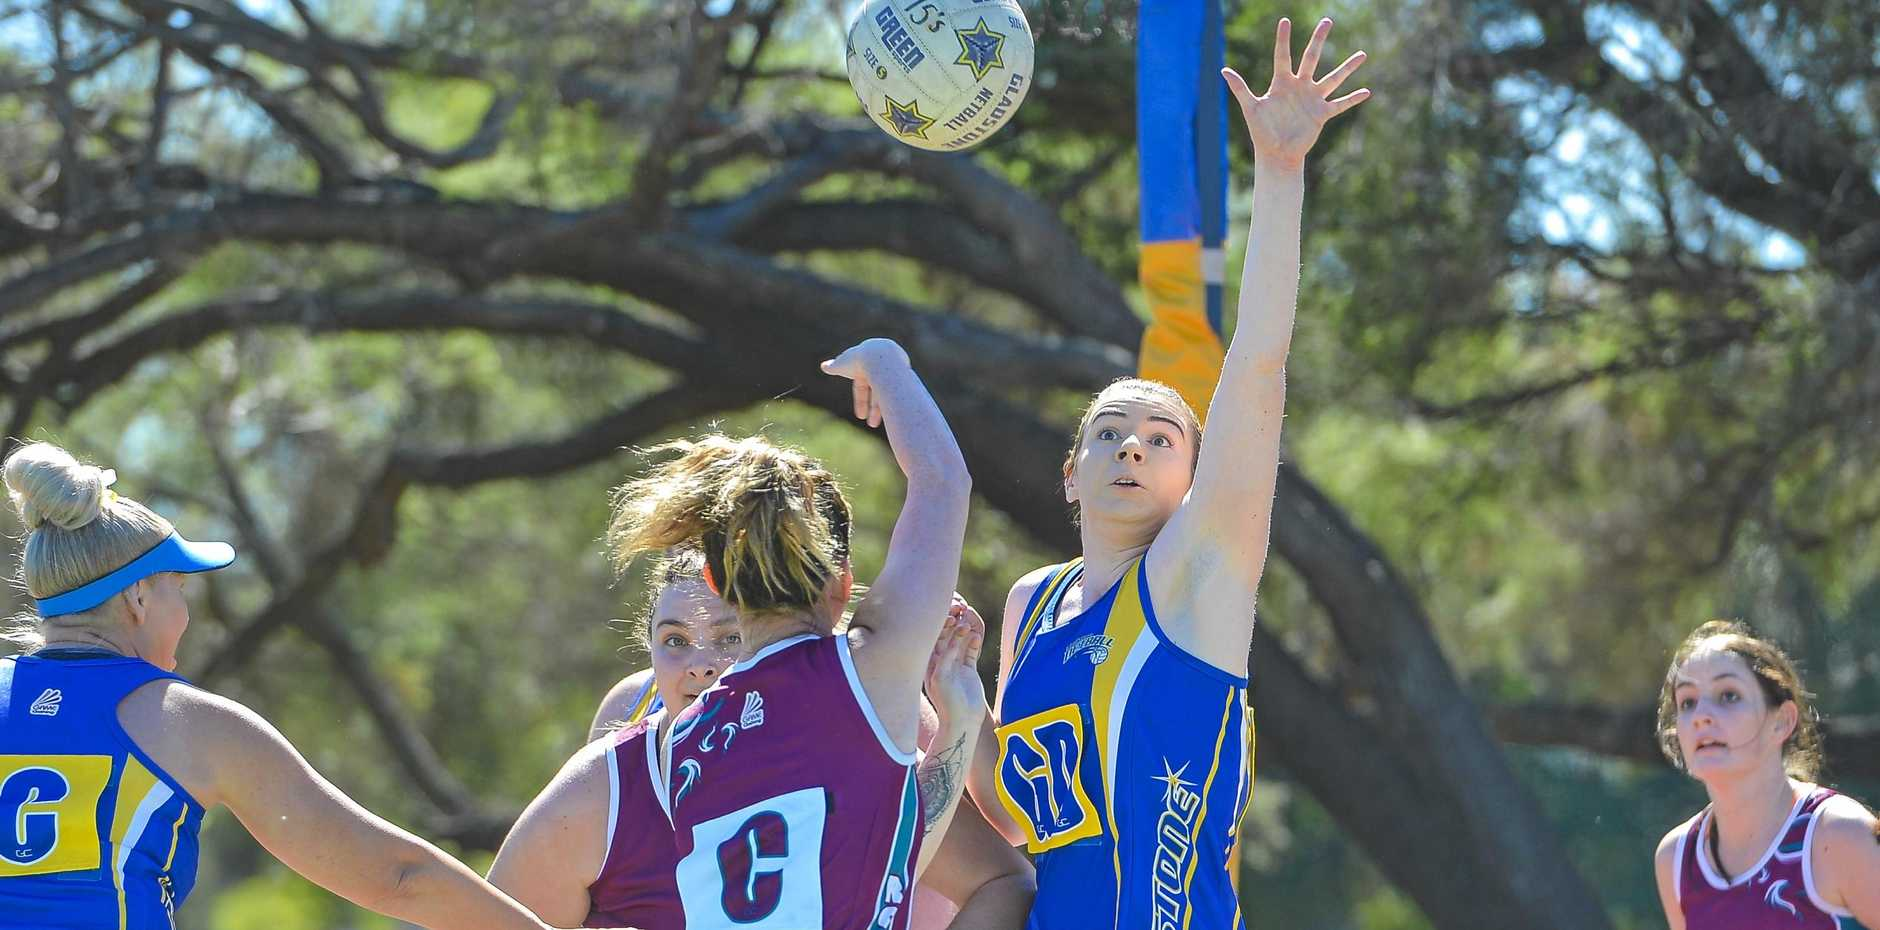 HAND UP: Olivia Whitla showed her great defensive skills against a classy Rockhampton team on Saturday. Round two of the Queensland Premier League games are on June 2.